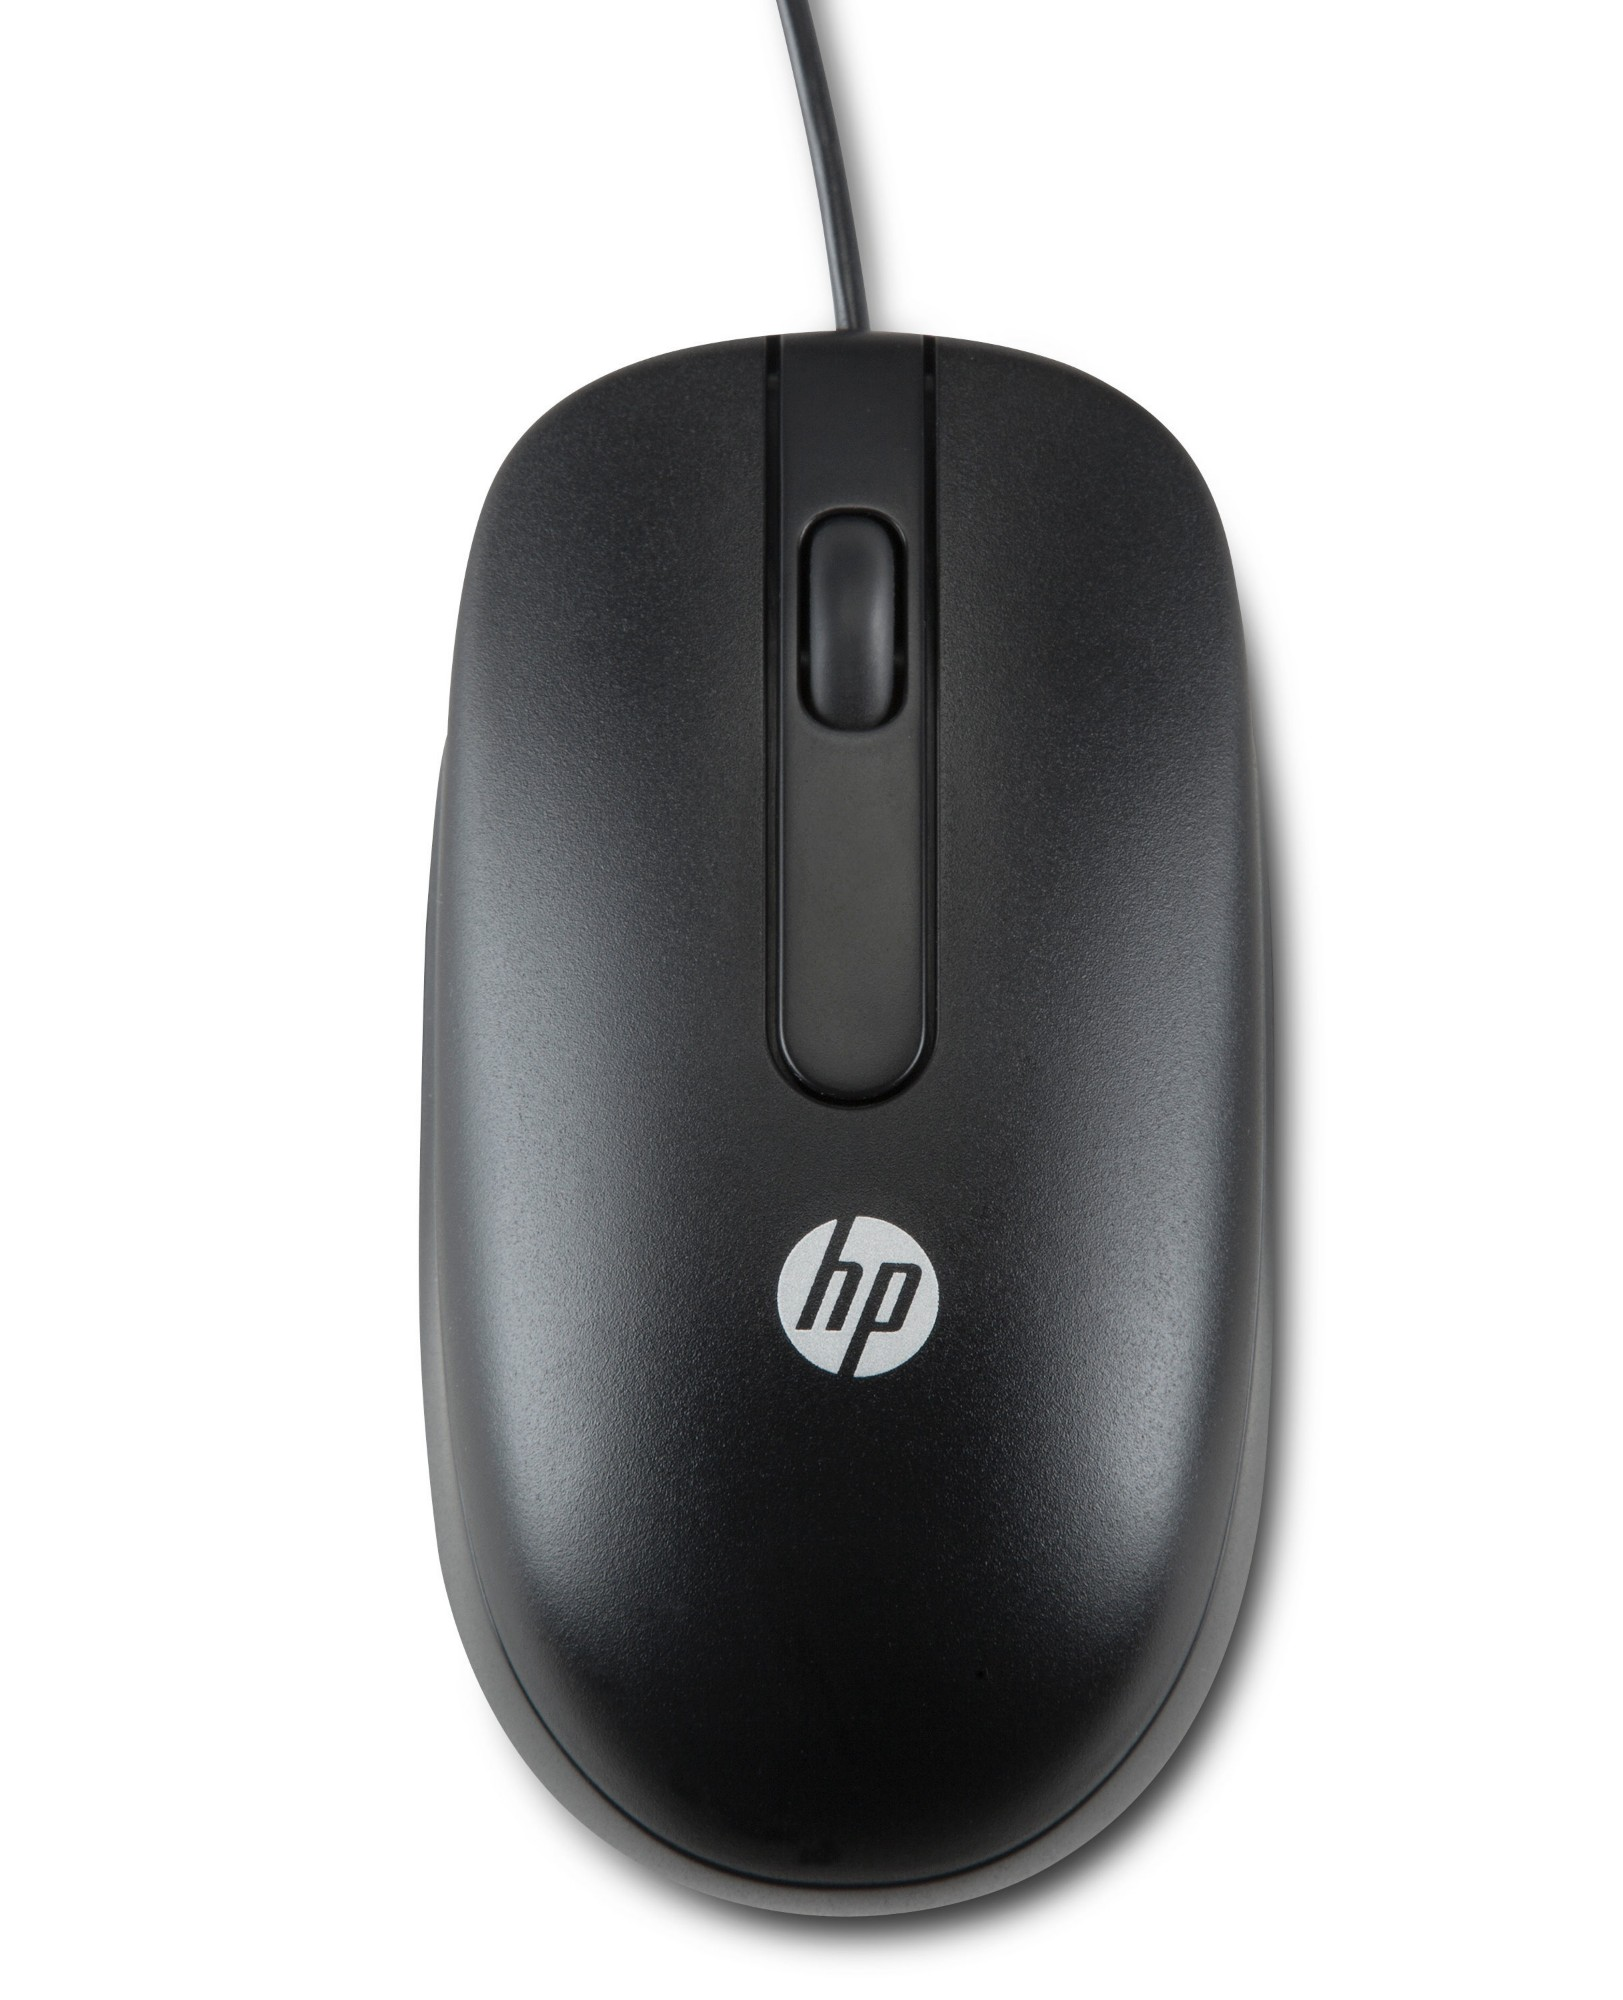 HP QY777AT USB OPTICAL SCROLL MOUSE 800DPI AMBIDEXTROUS BLACK MICE